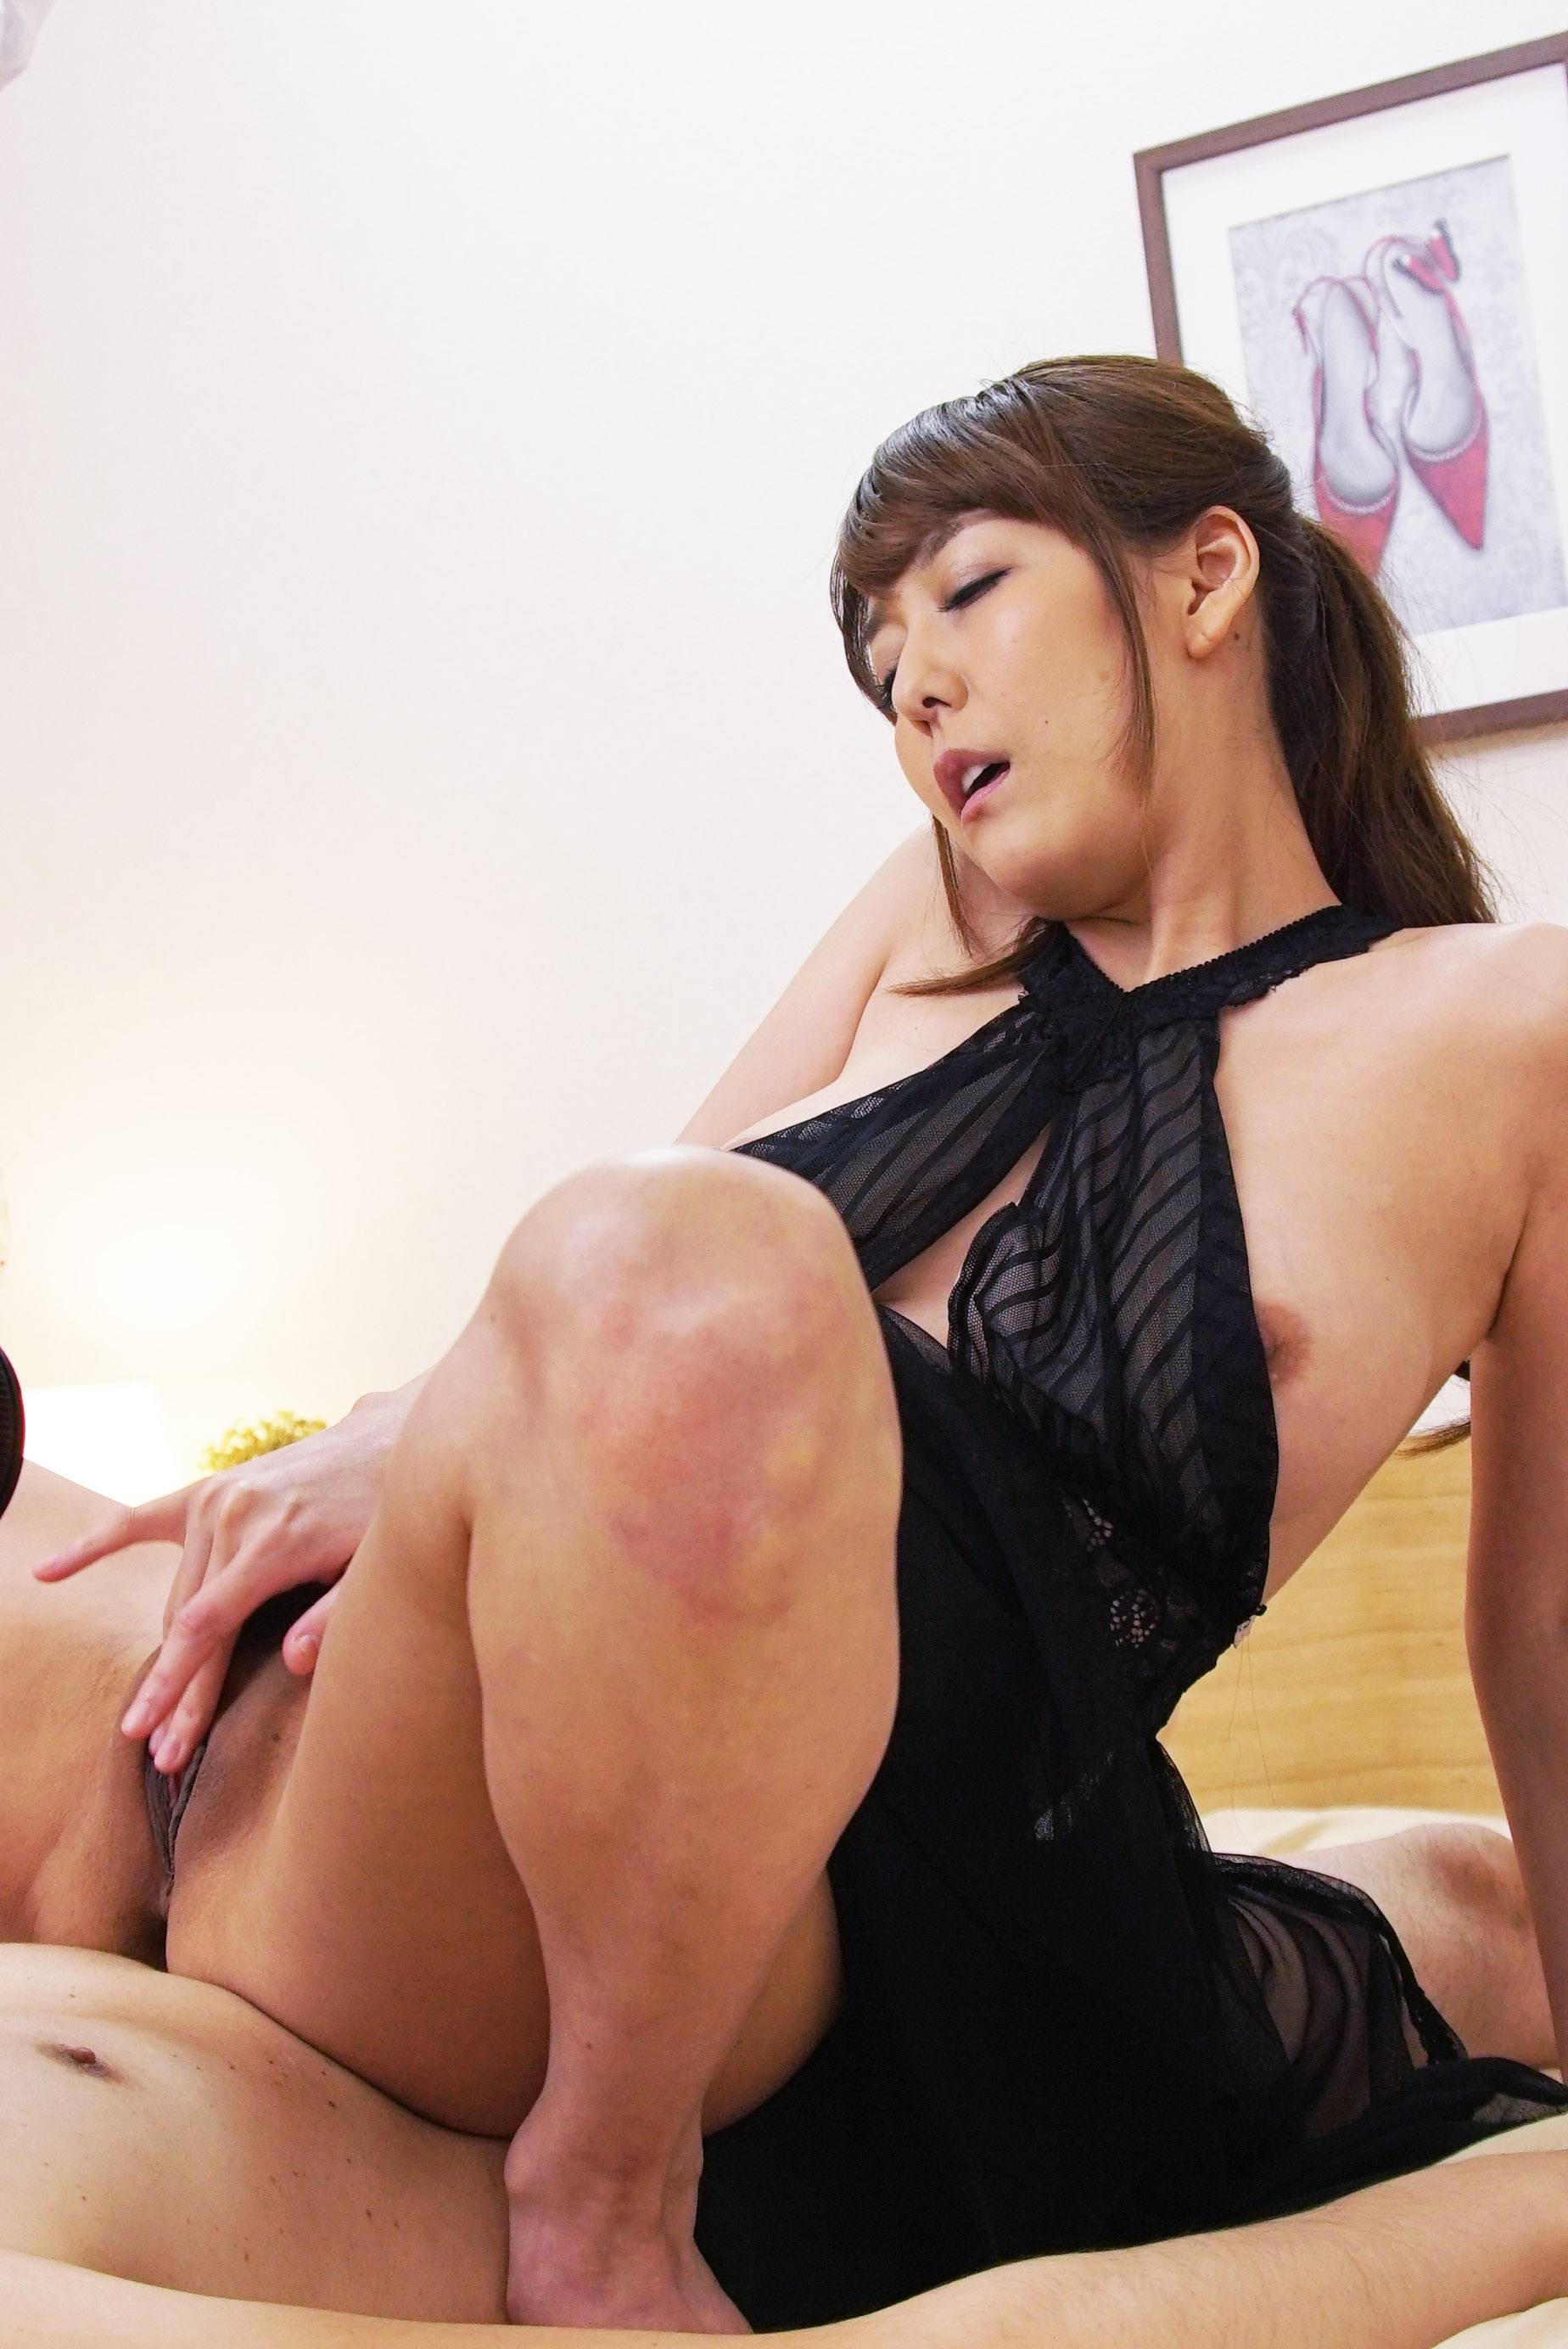 Squirting lover asagiri akari wants to make date with you 7